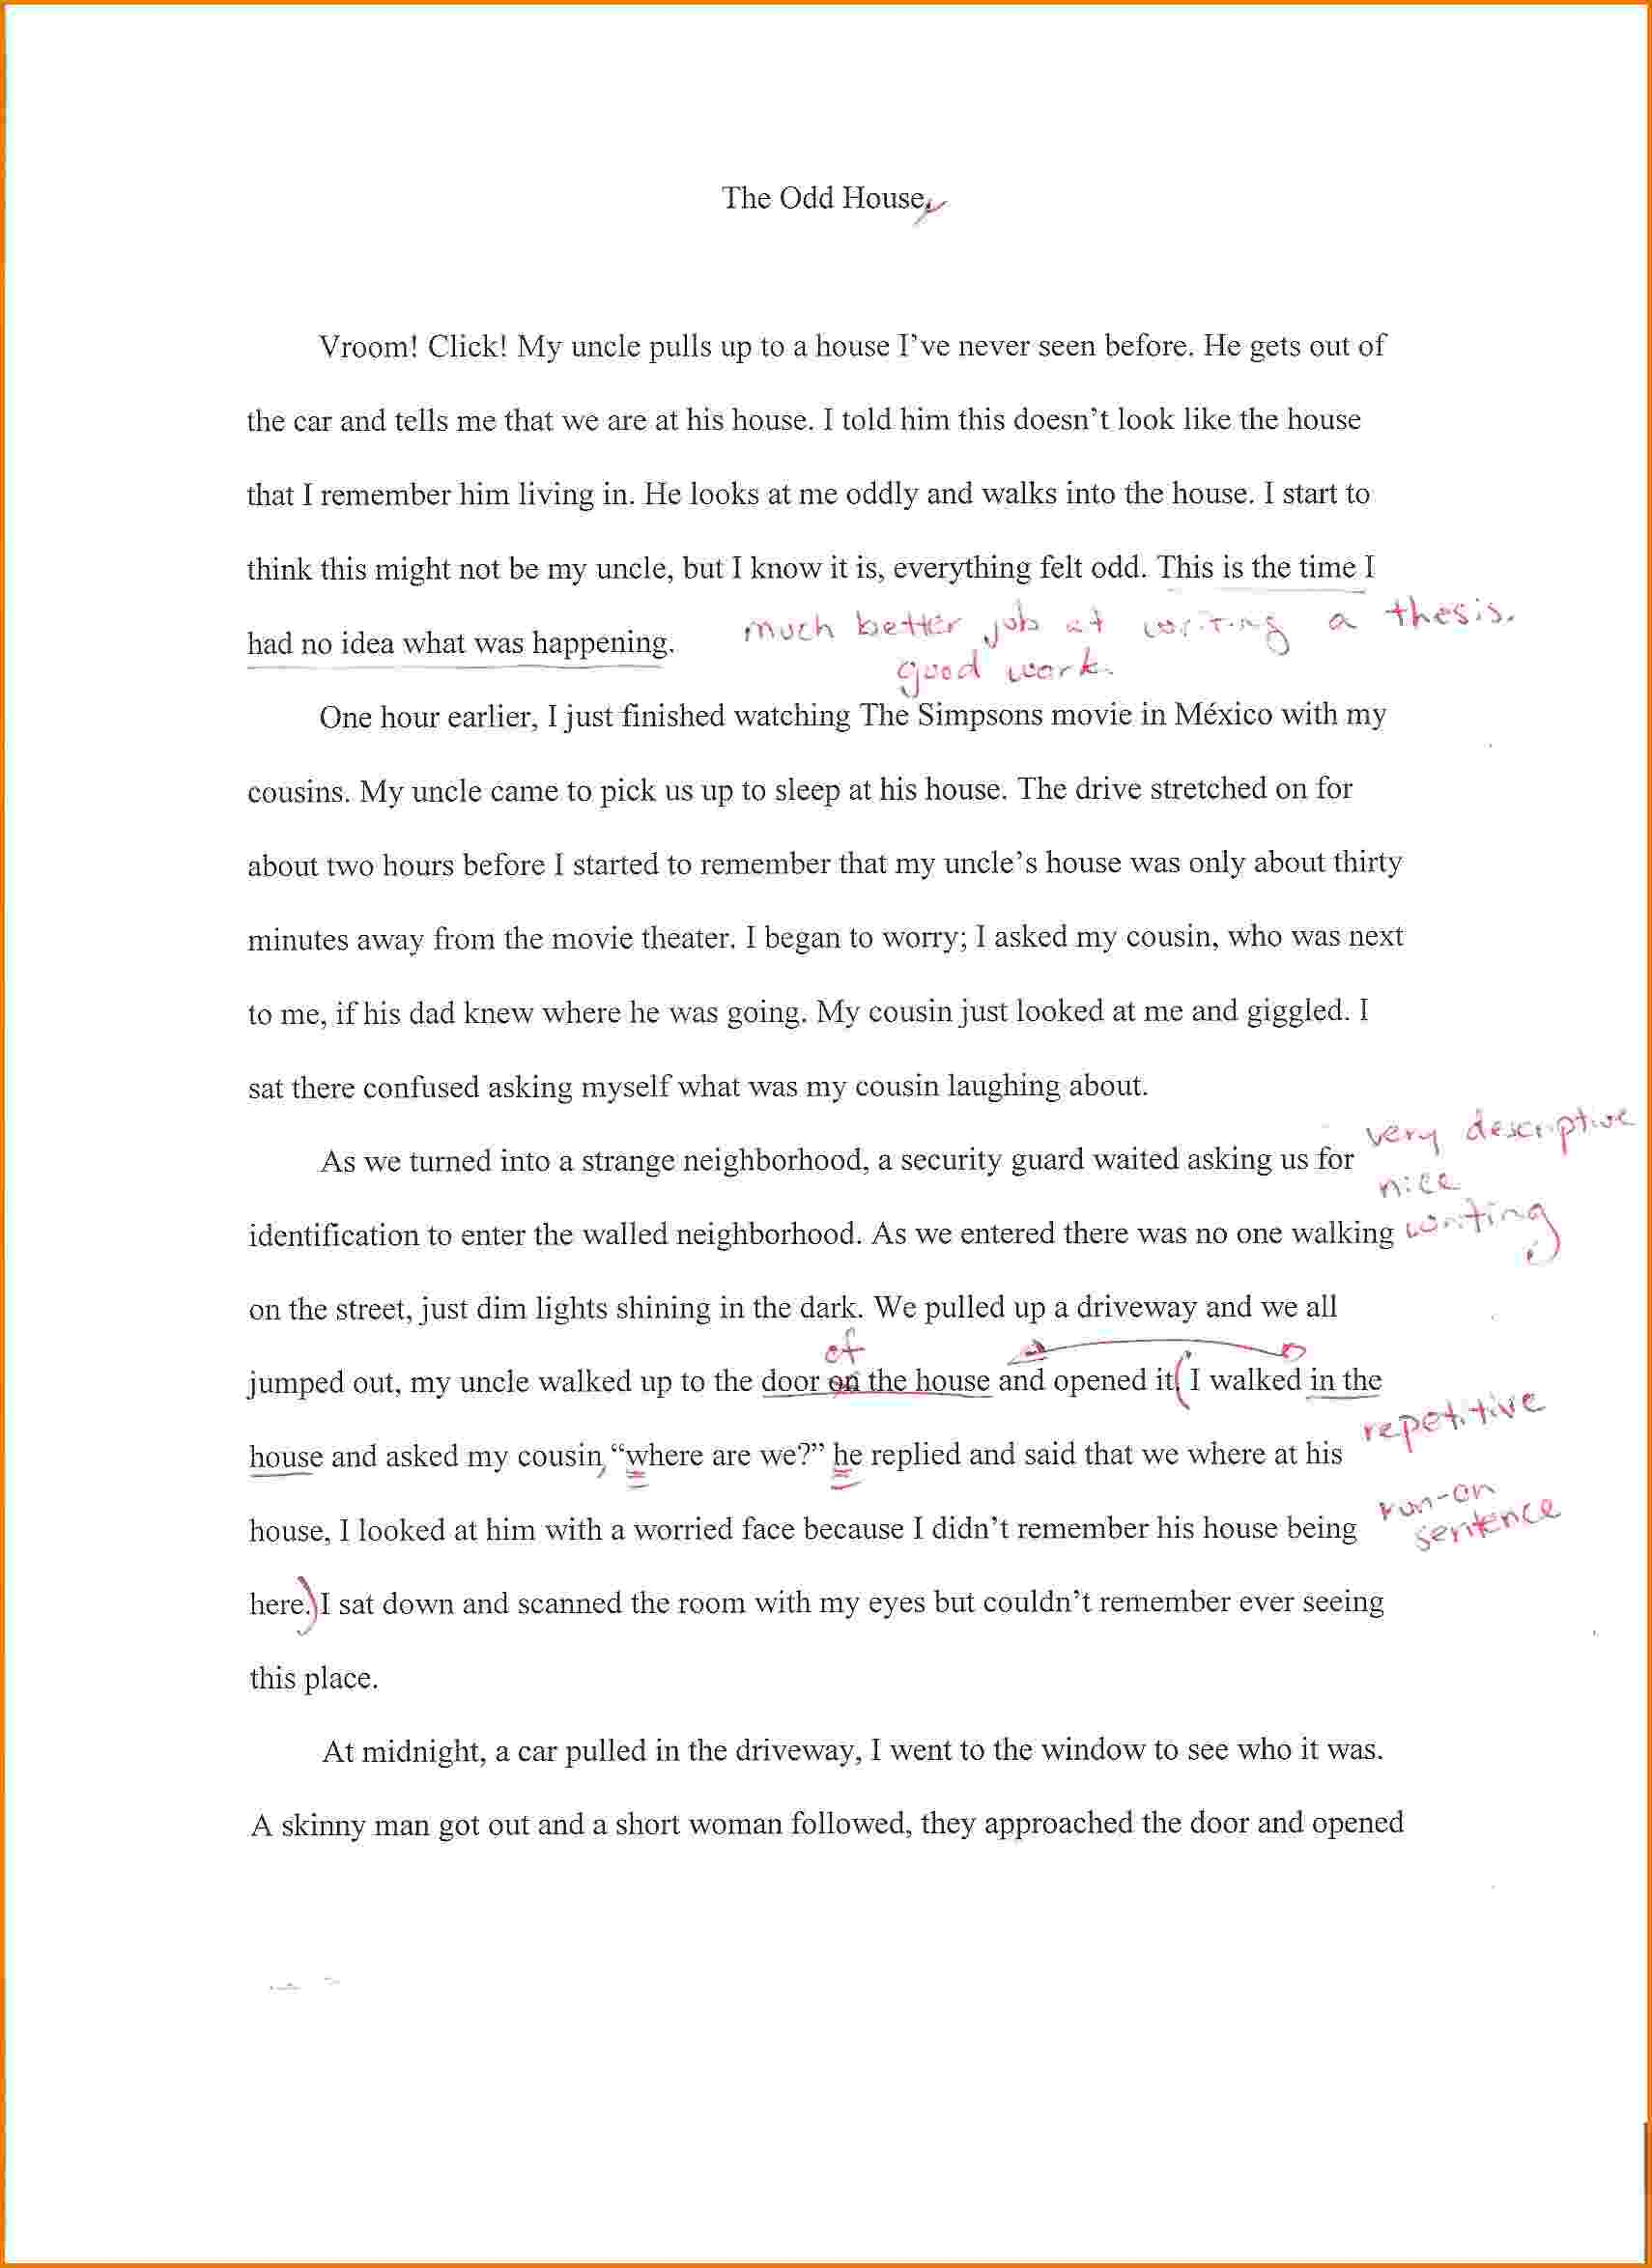 006 Family Background Essay Examplesample2 Unusual Autobiography Example Pdf Autobiographical Sample For 8th Grade Template Full